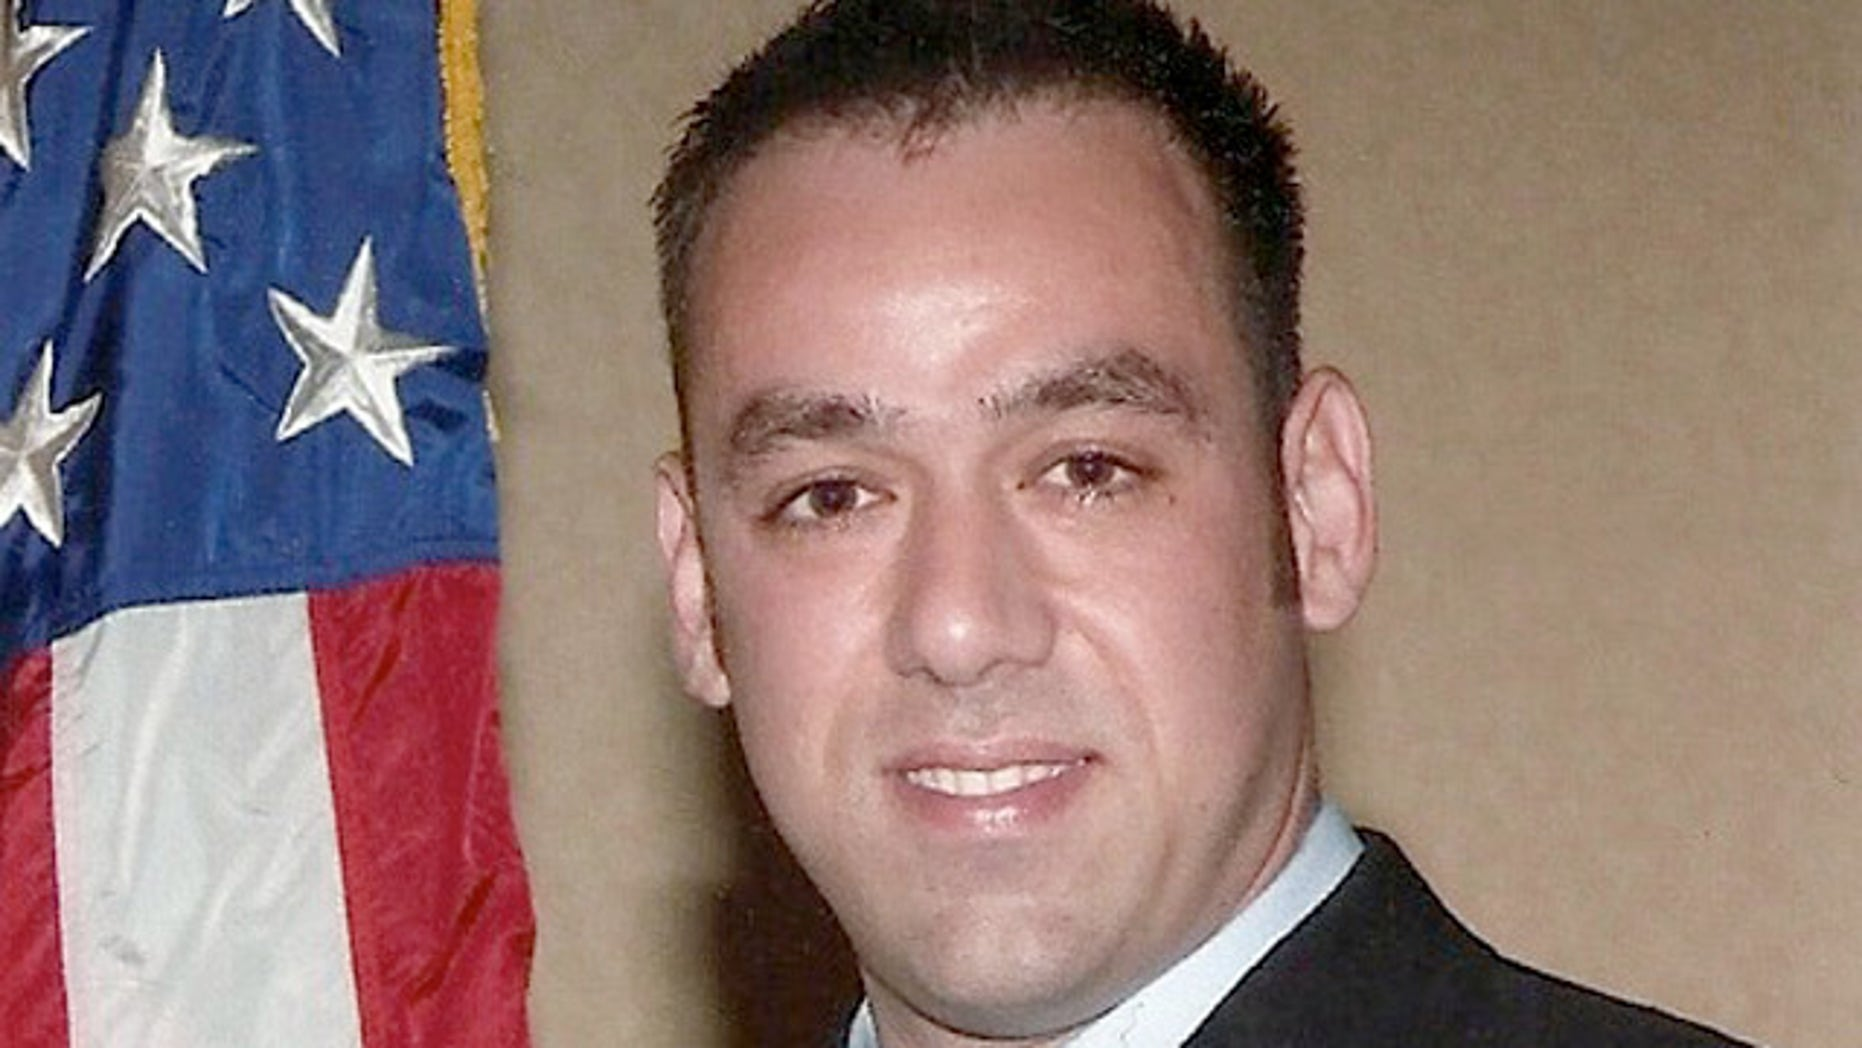 U.S. officials say Jaime Zapata, a U.S. Immigration and Customs Enforcement agent, was killed and another agent wounded while driving through northern Mexico in February 2011.